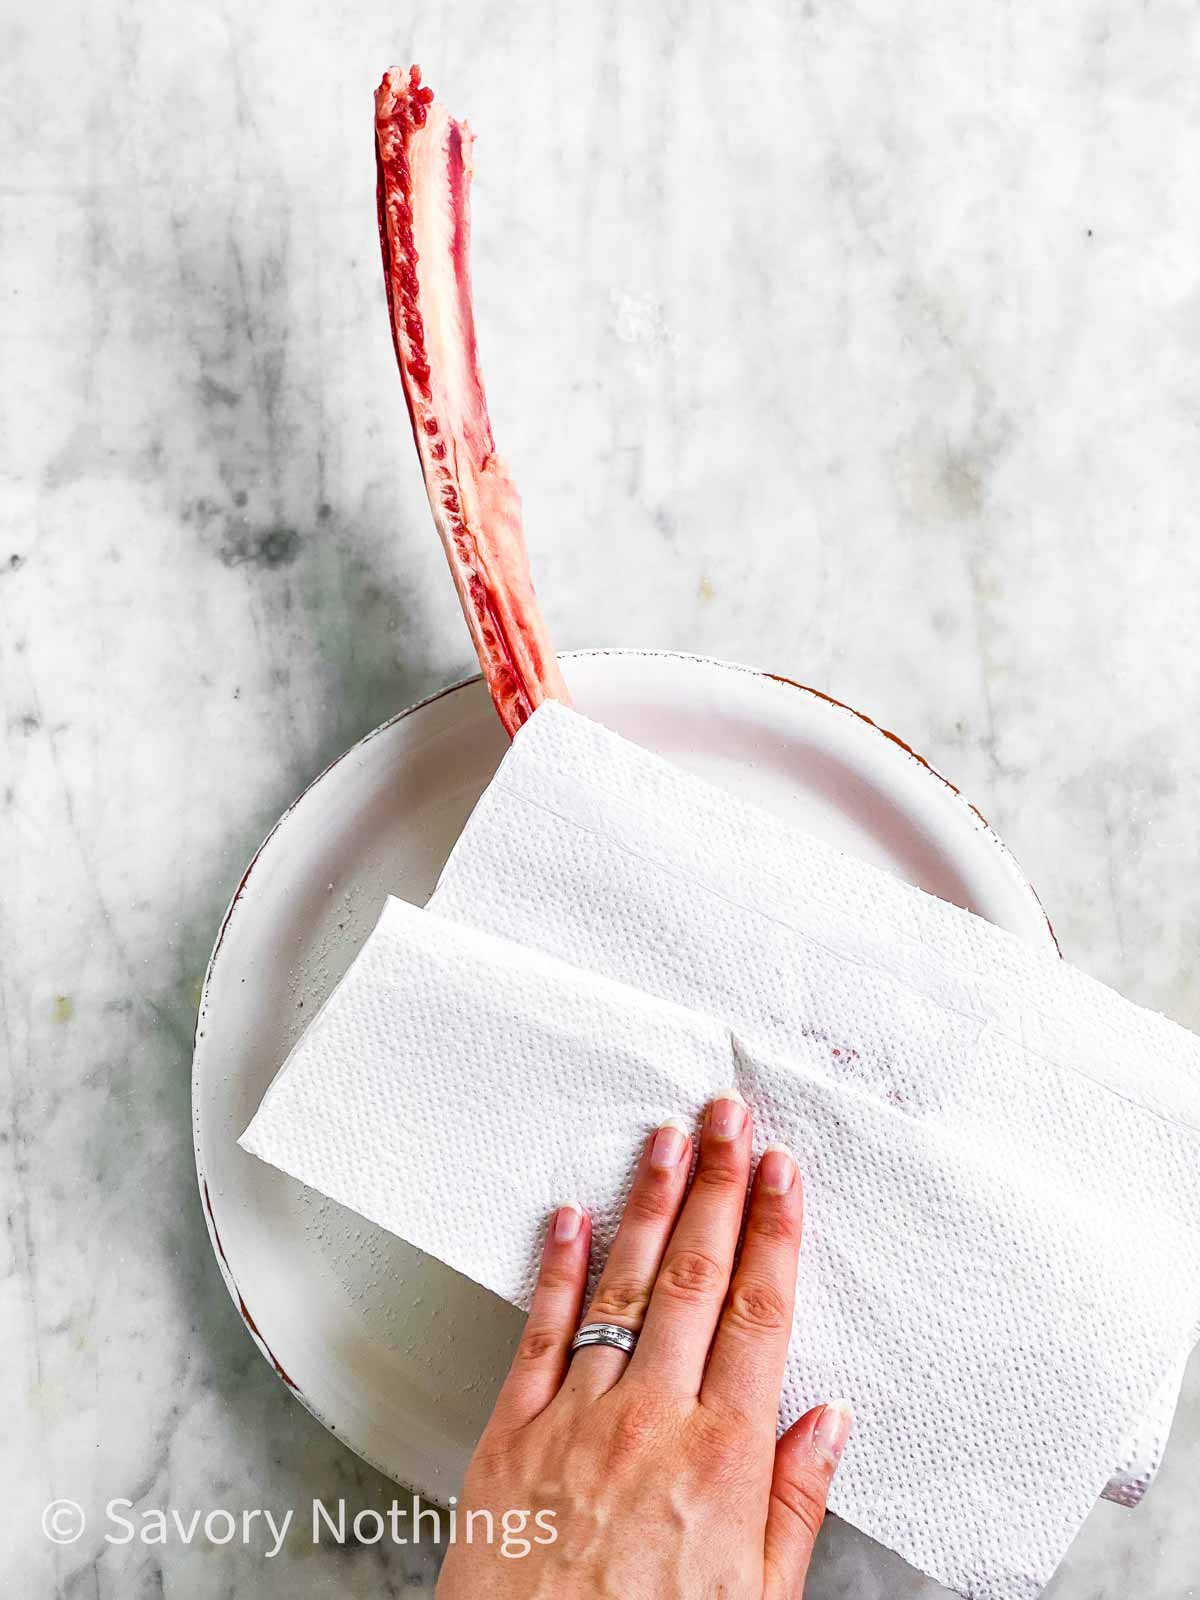 female hand using paper towels to pat dry a tomahawk steak on a white plate